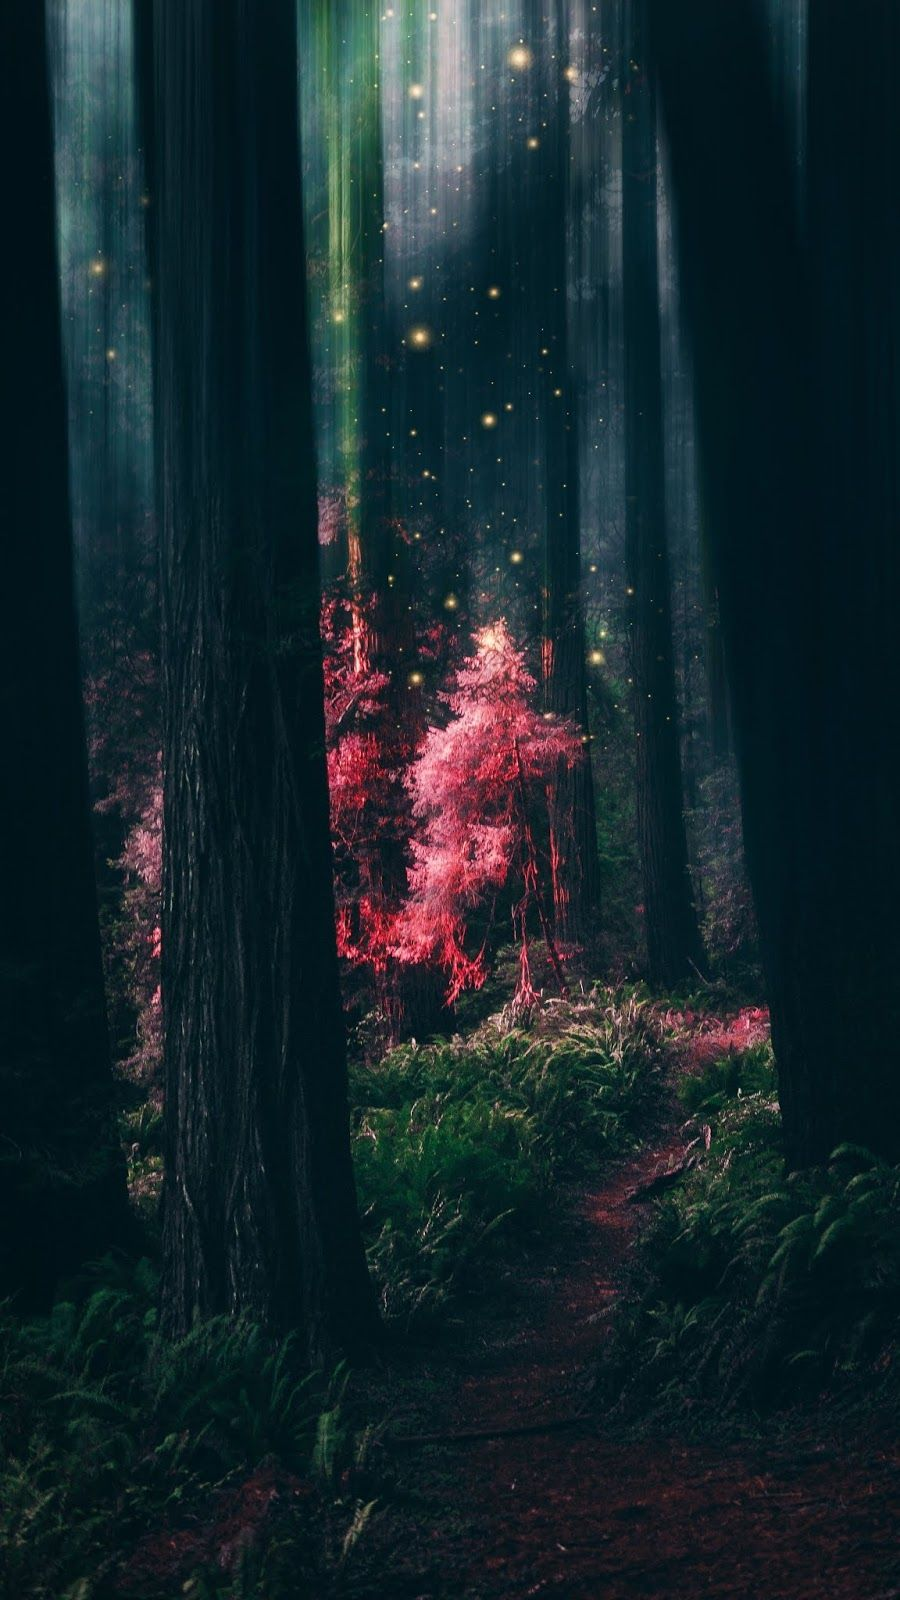 Magical Forest Beautiful Wallpapers Aesthetic Wallpapers Forest Wallpaper